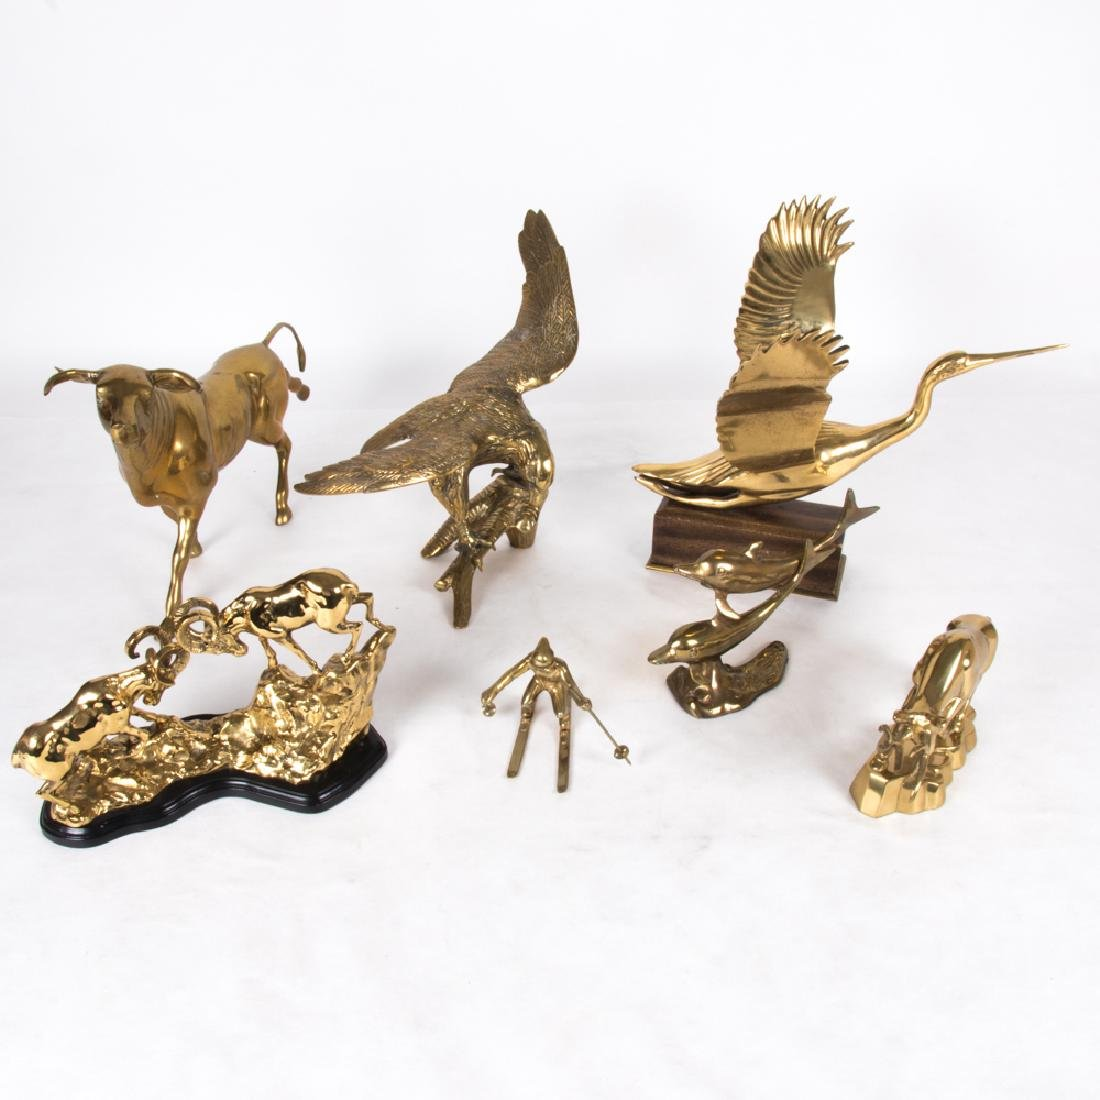 A Miscellaneous Collection of Brass Animal Form